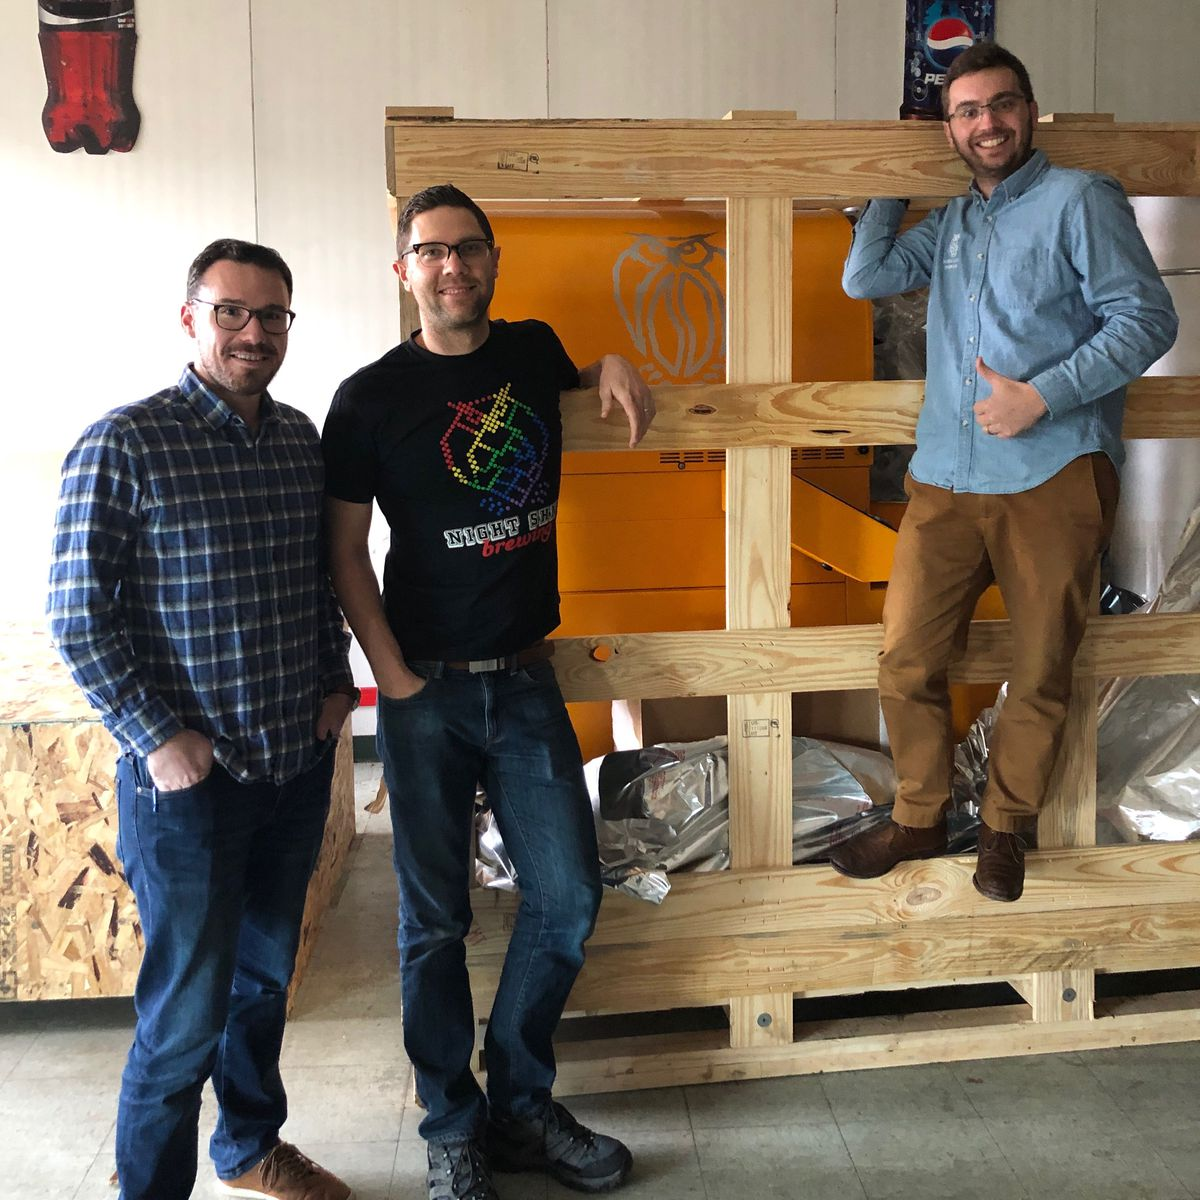 Night Shift founders Rob Burns, Michael Oxton, and Mike O'Mara with the roasting machine